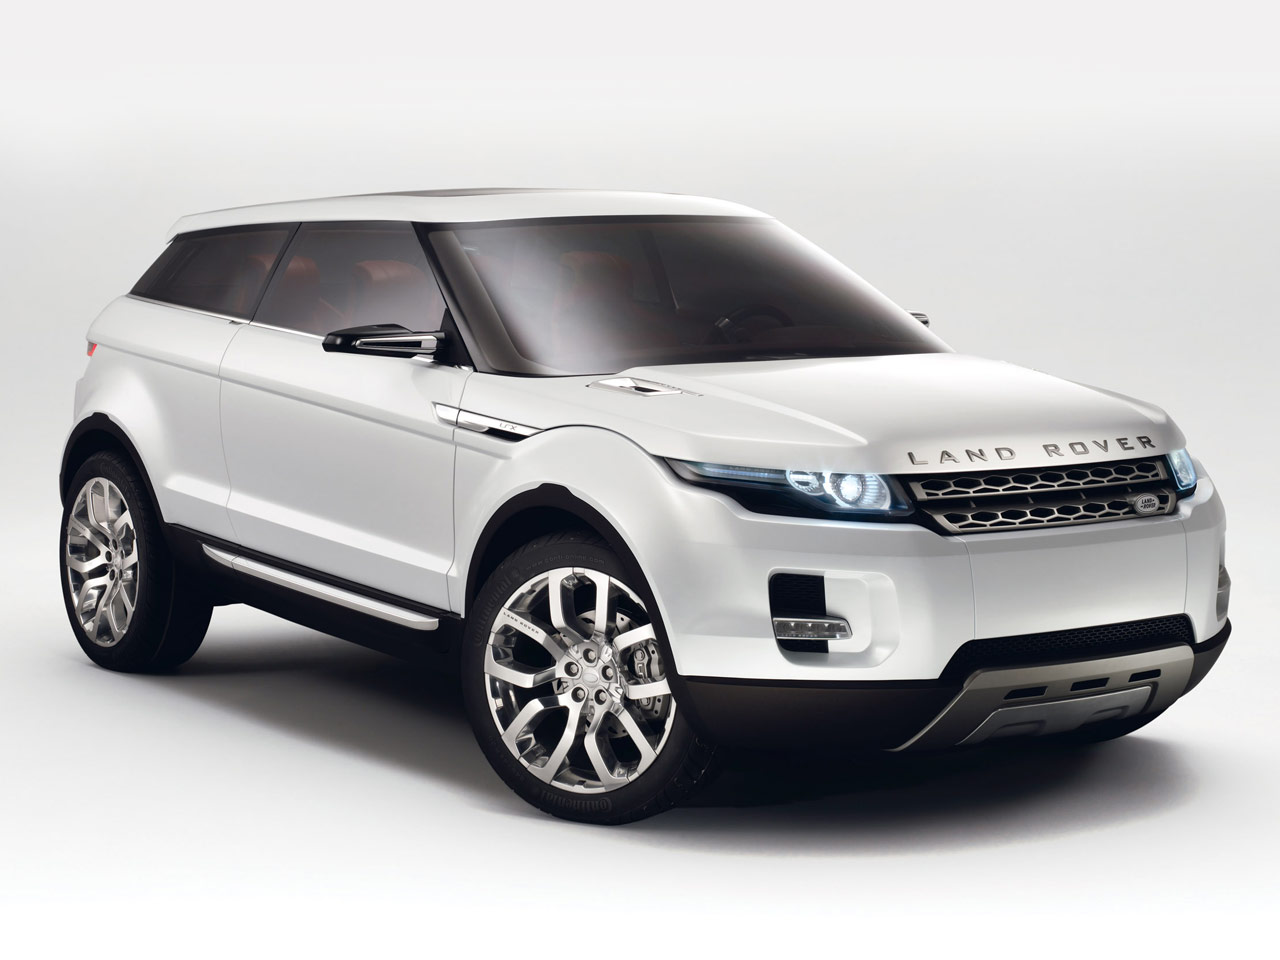 2011 Land Rover Range Rover Evoque Review